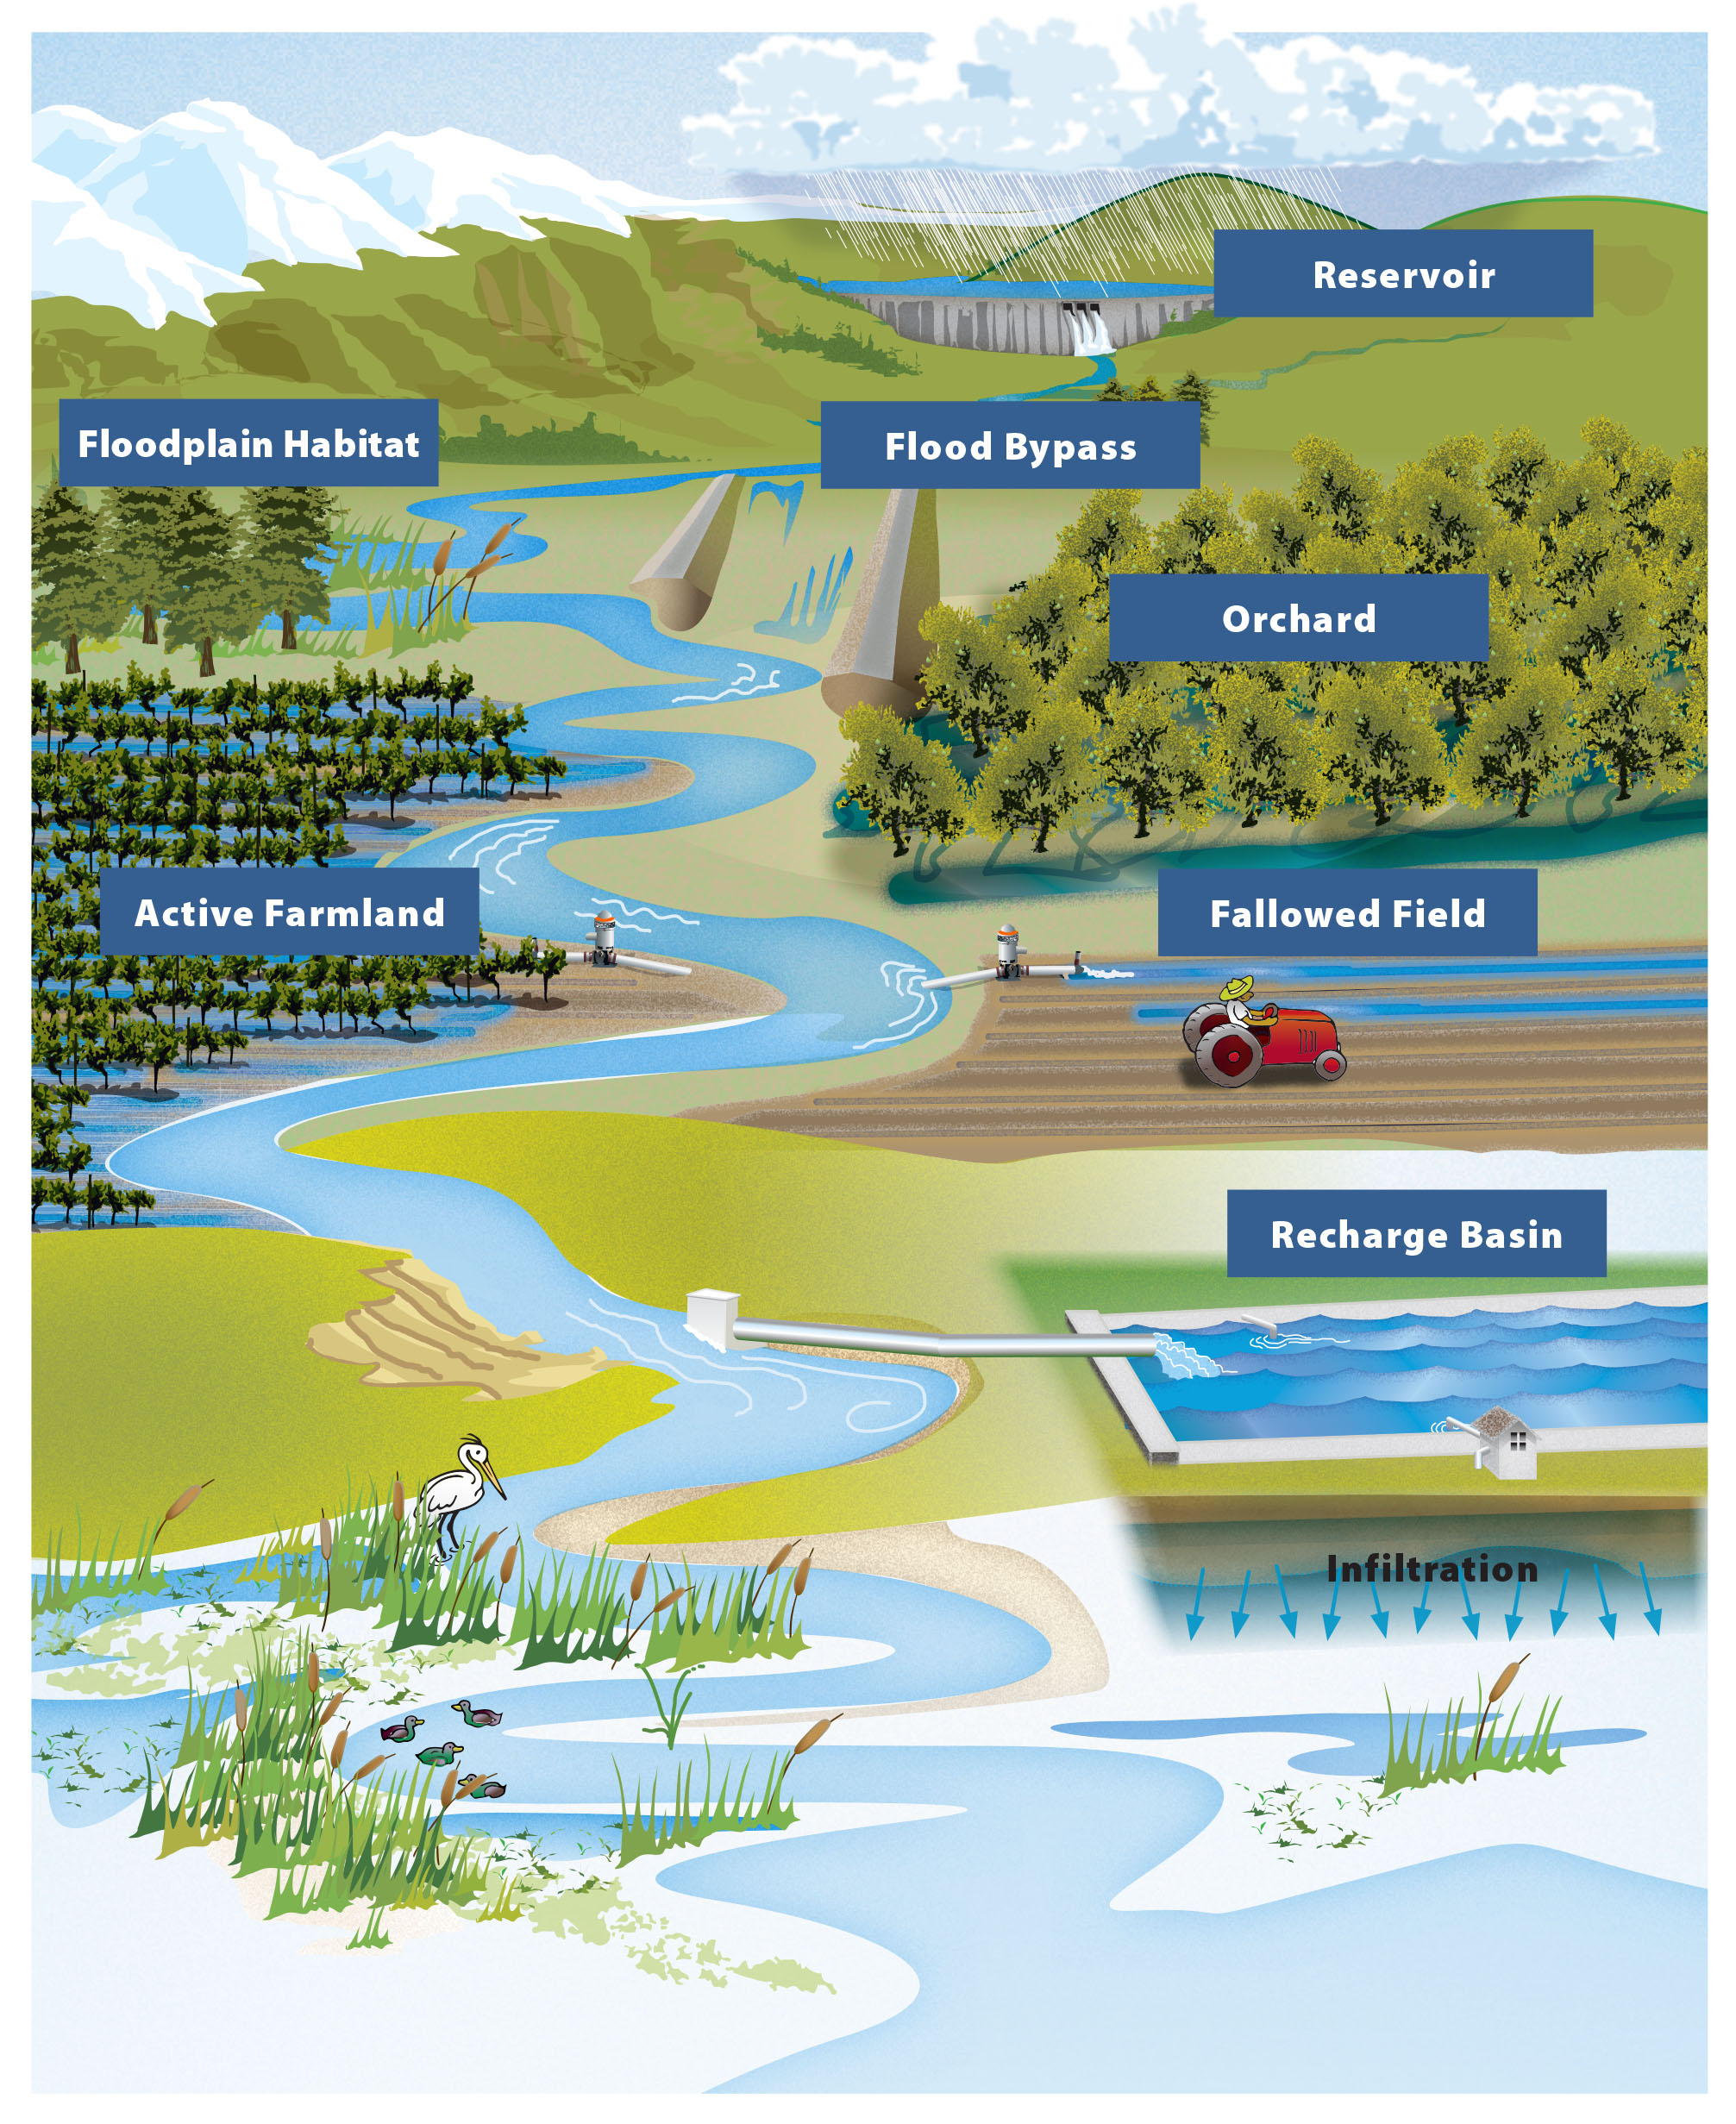 Flood-MAR Watershed Schematic Overview